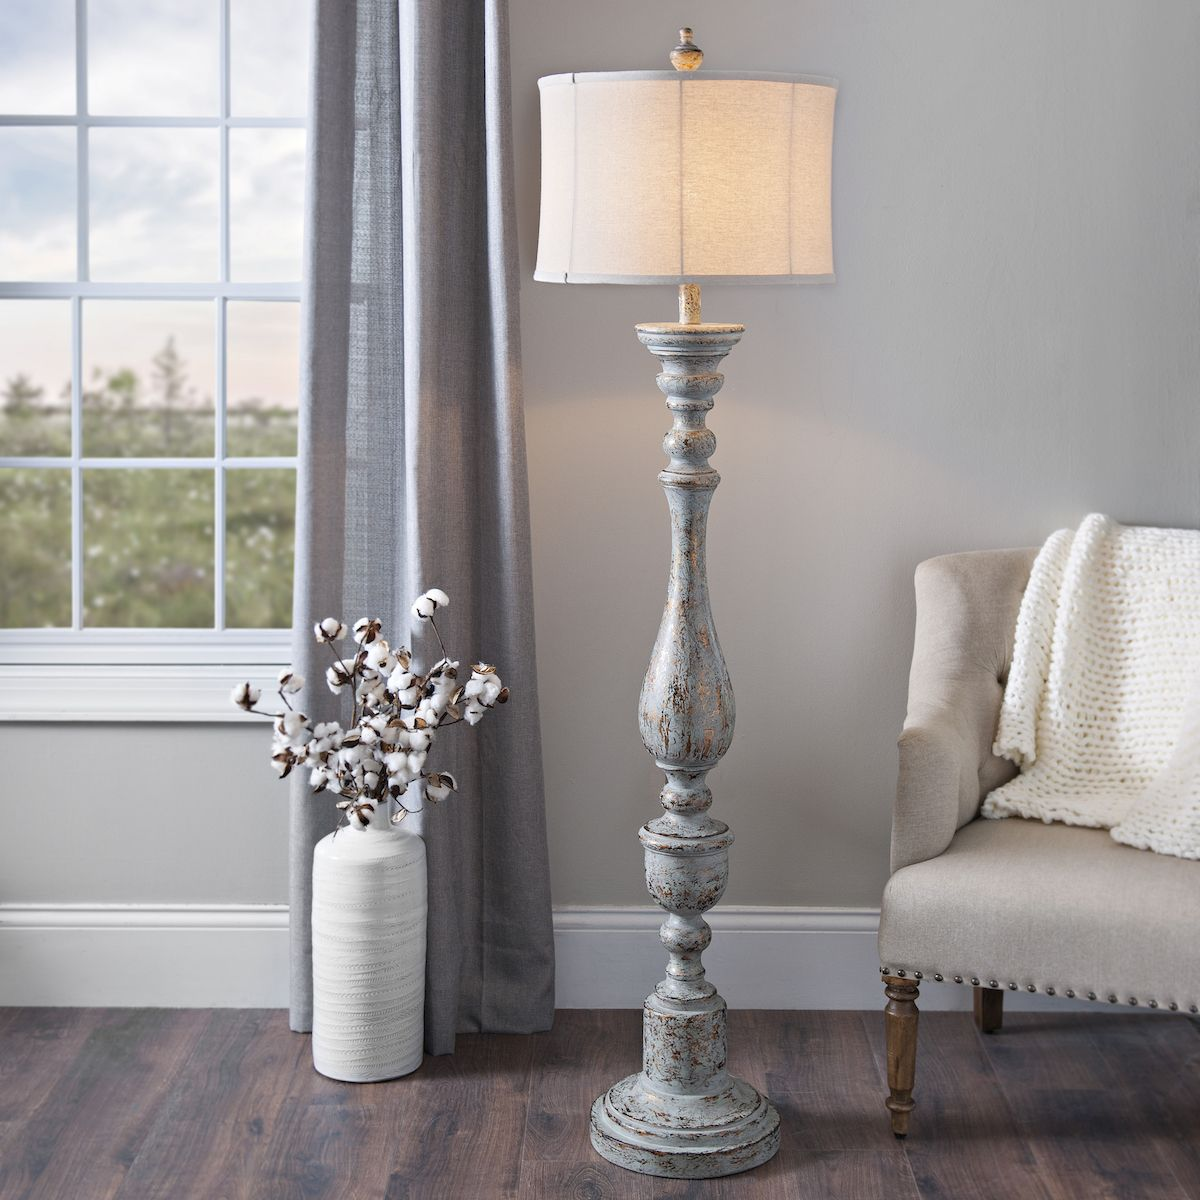 Not A Fan Over Overhead Lighting A Floor Lamp Can Give Your Space A Warmer Look Without Overwhelming Floor Lamps Living Room Lamps Living Room Diy Floor Lamp